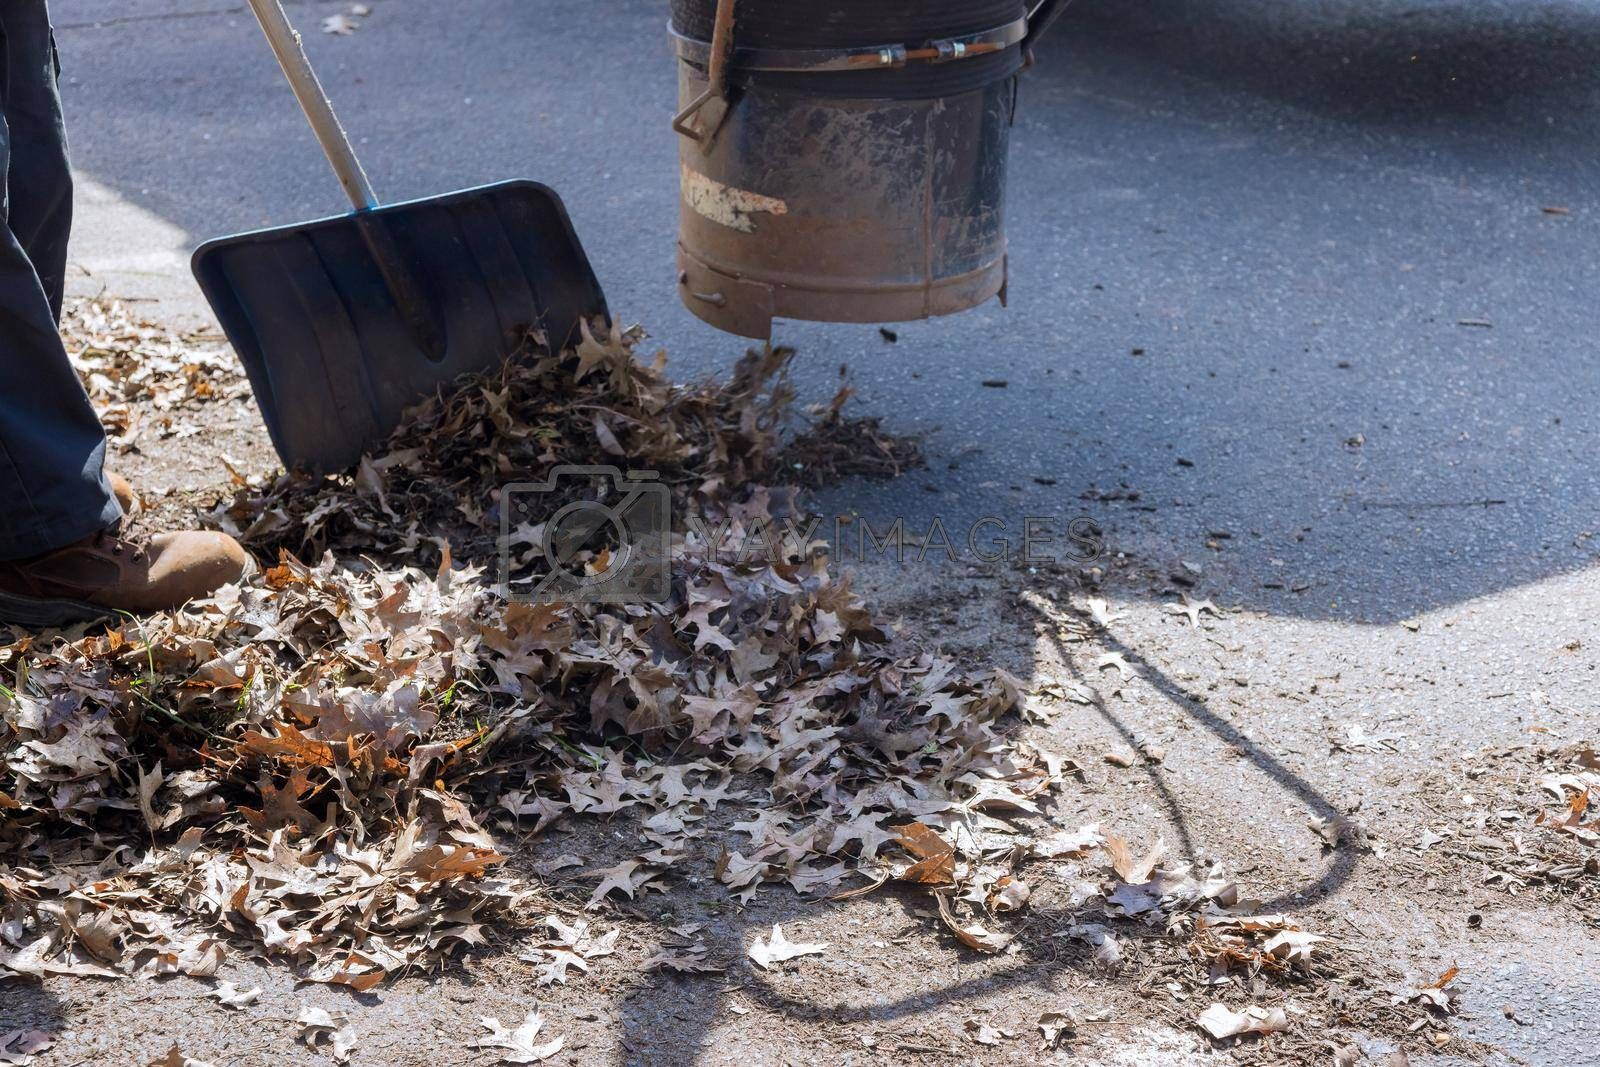 Man using a vacuum cleaner works in an autumn road, off leaves fallen from trees